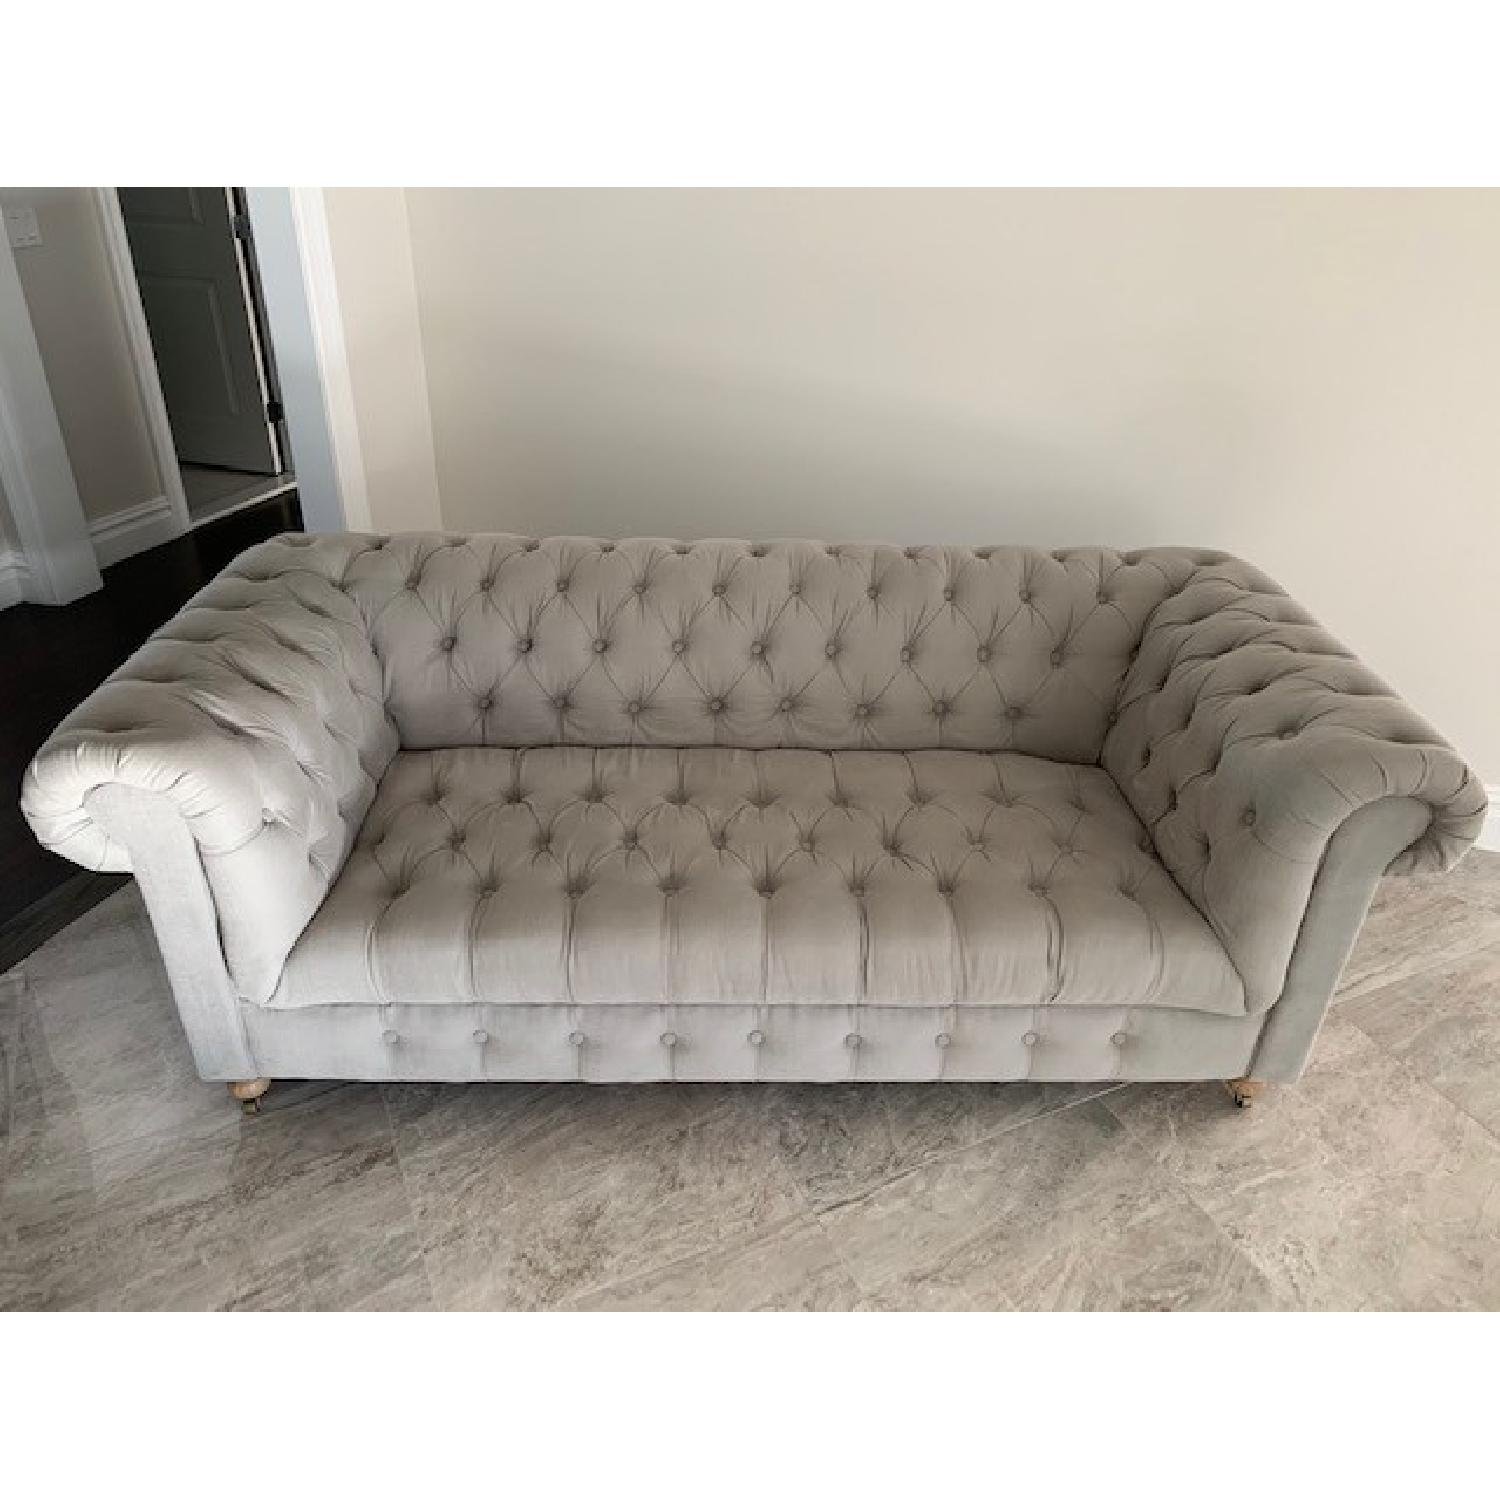 Restoration Hardware Cambridge Belgian Linen Fog Sofa-0